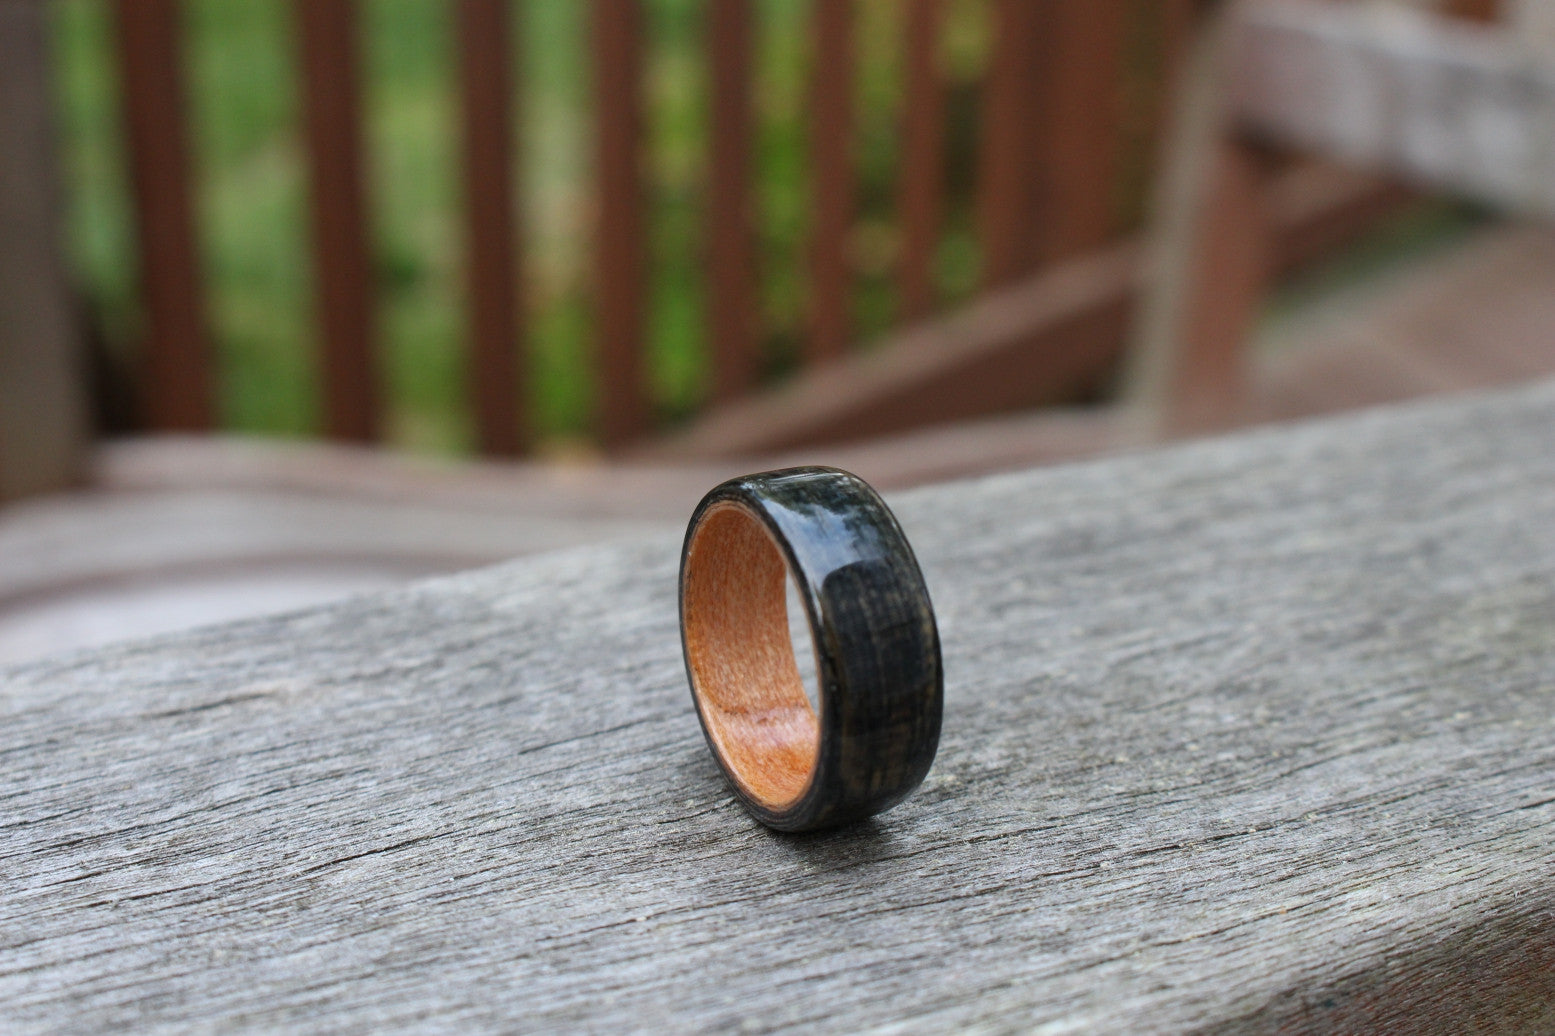 Creating Wooden Rings: Making the New, Old Again